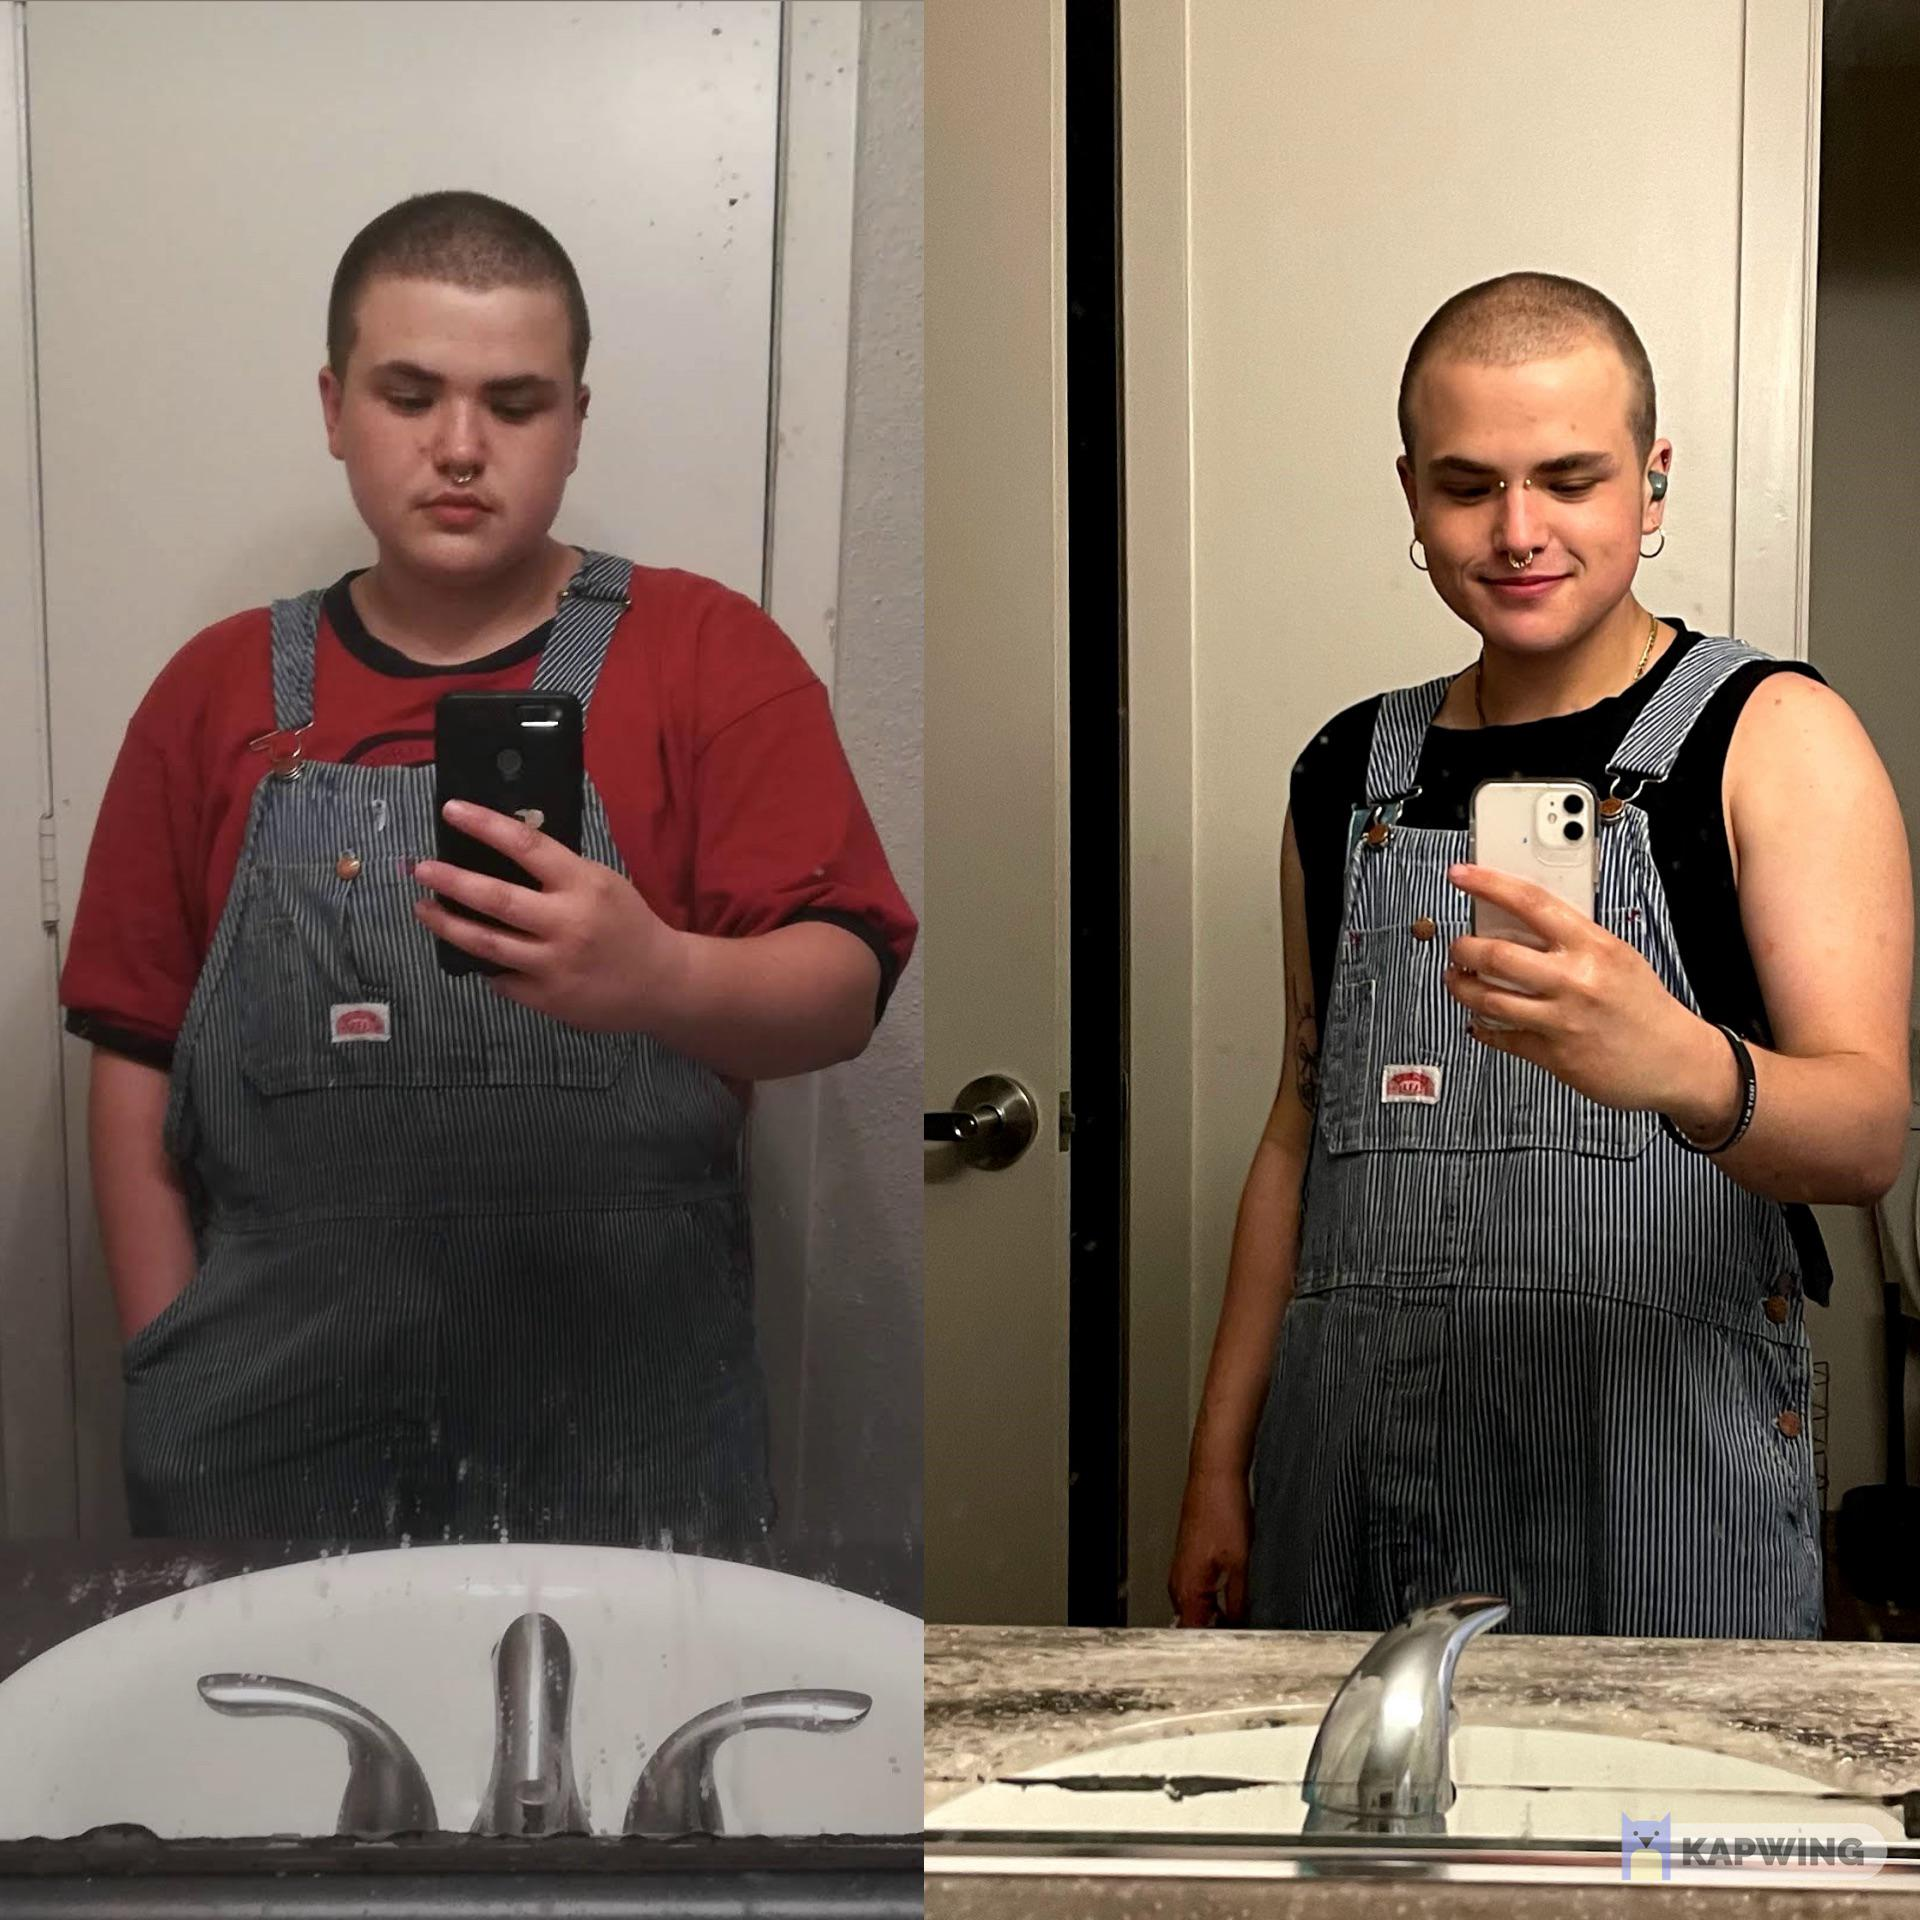 5'3 Male Before and After 58 lbs Weight Loss 213 lbs to 155 lbs